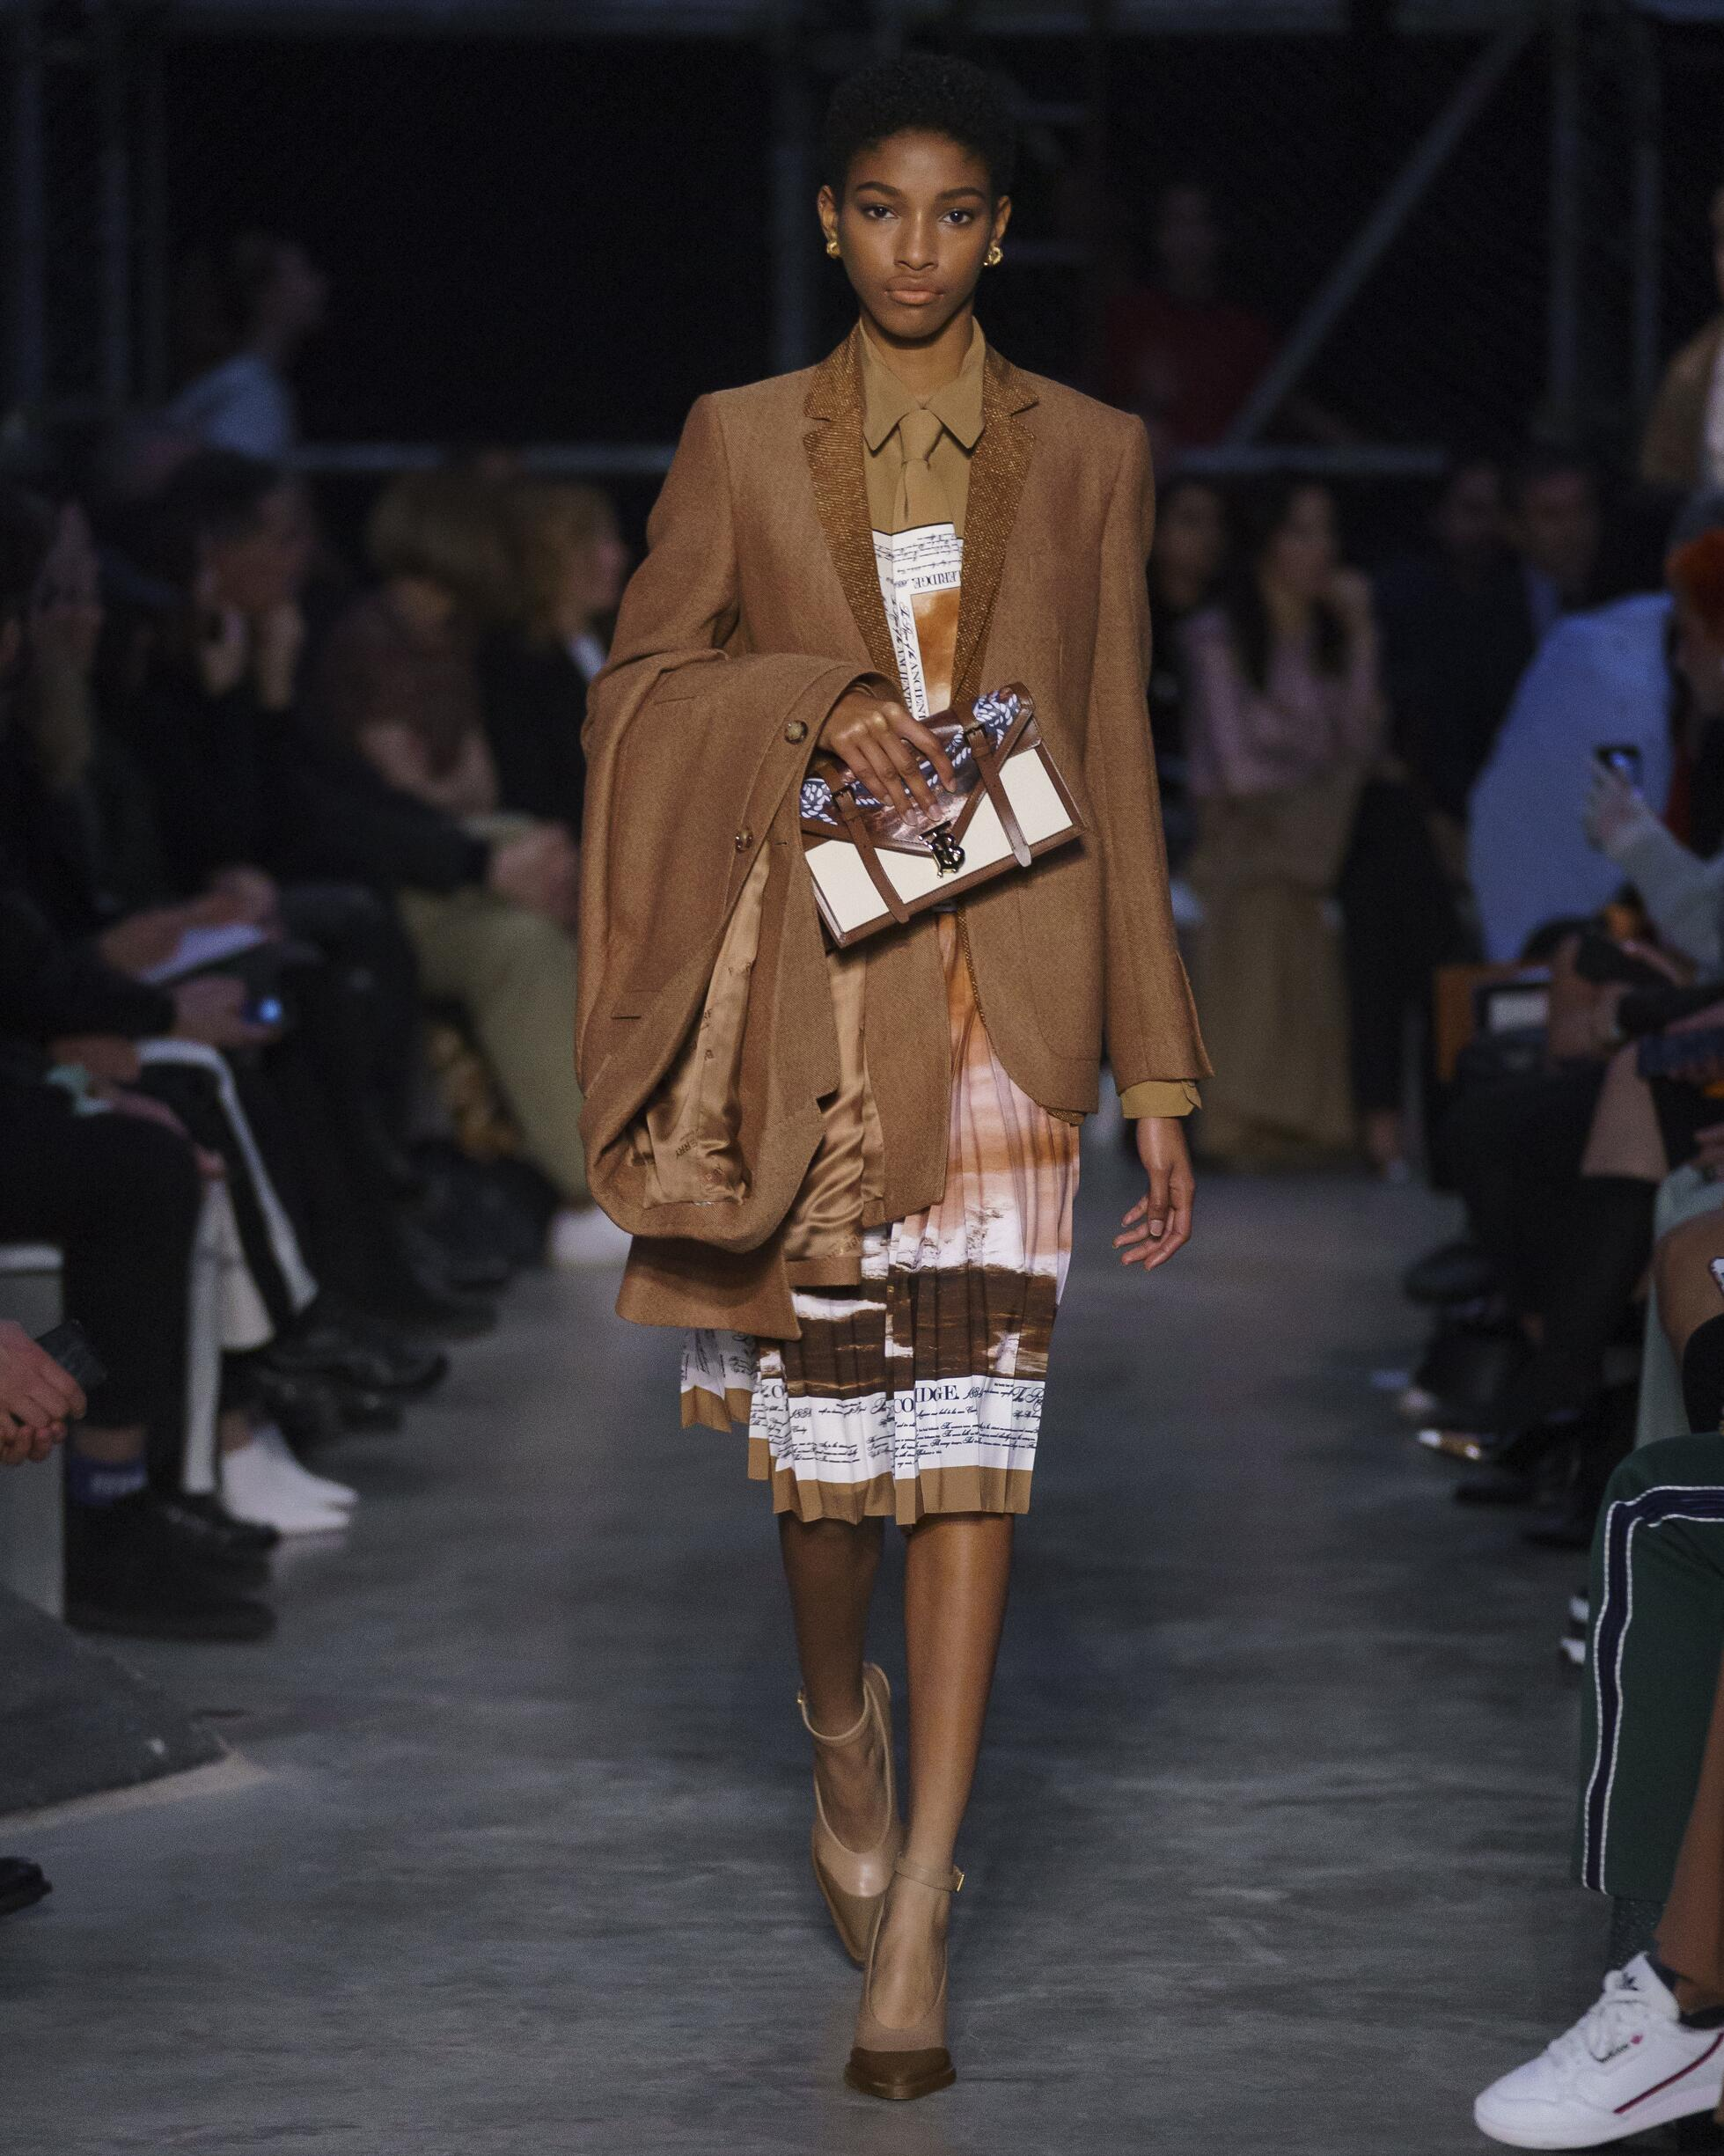 FW 2019 Burberry Show London Fashion Week